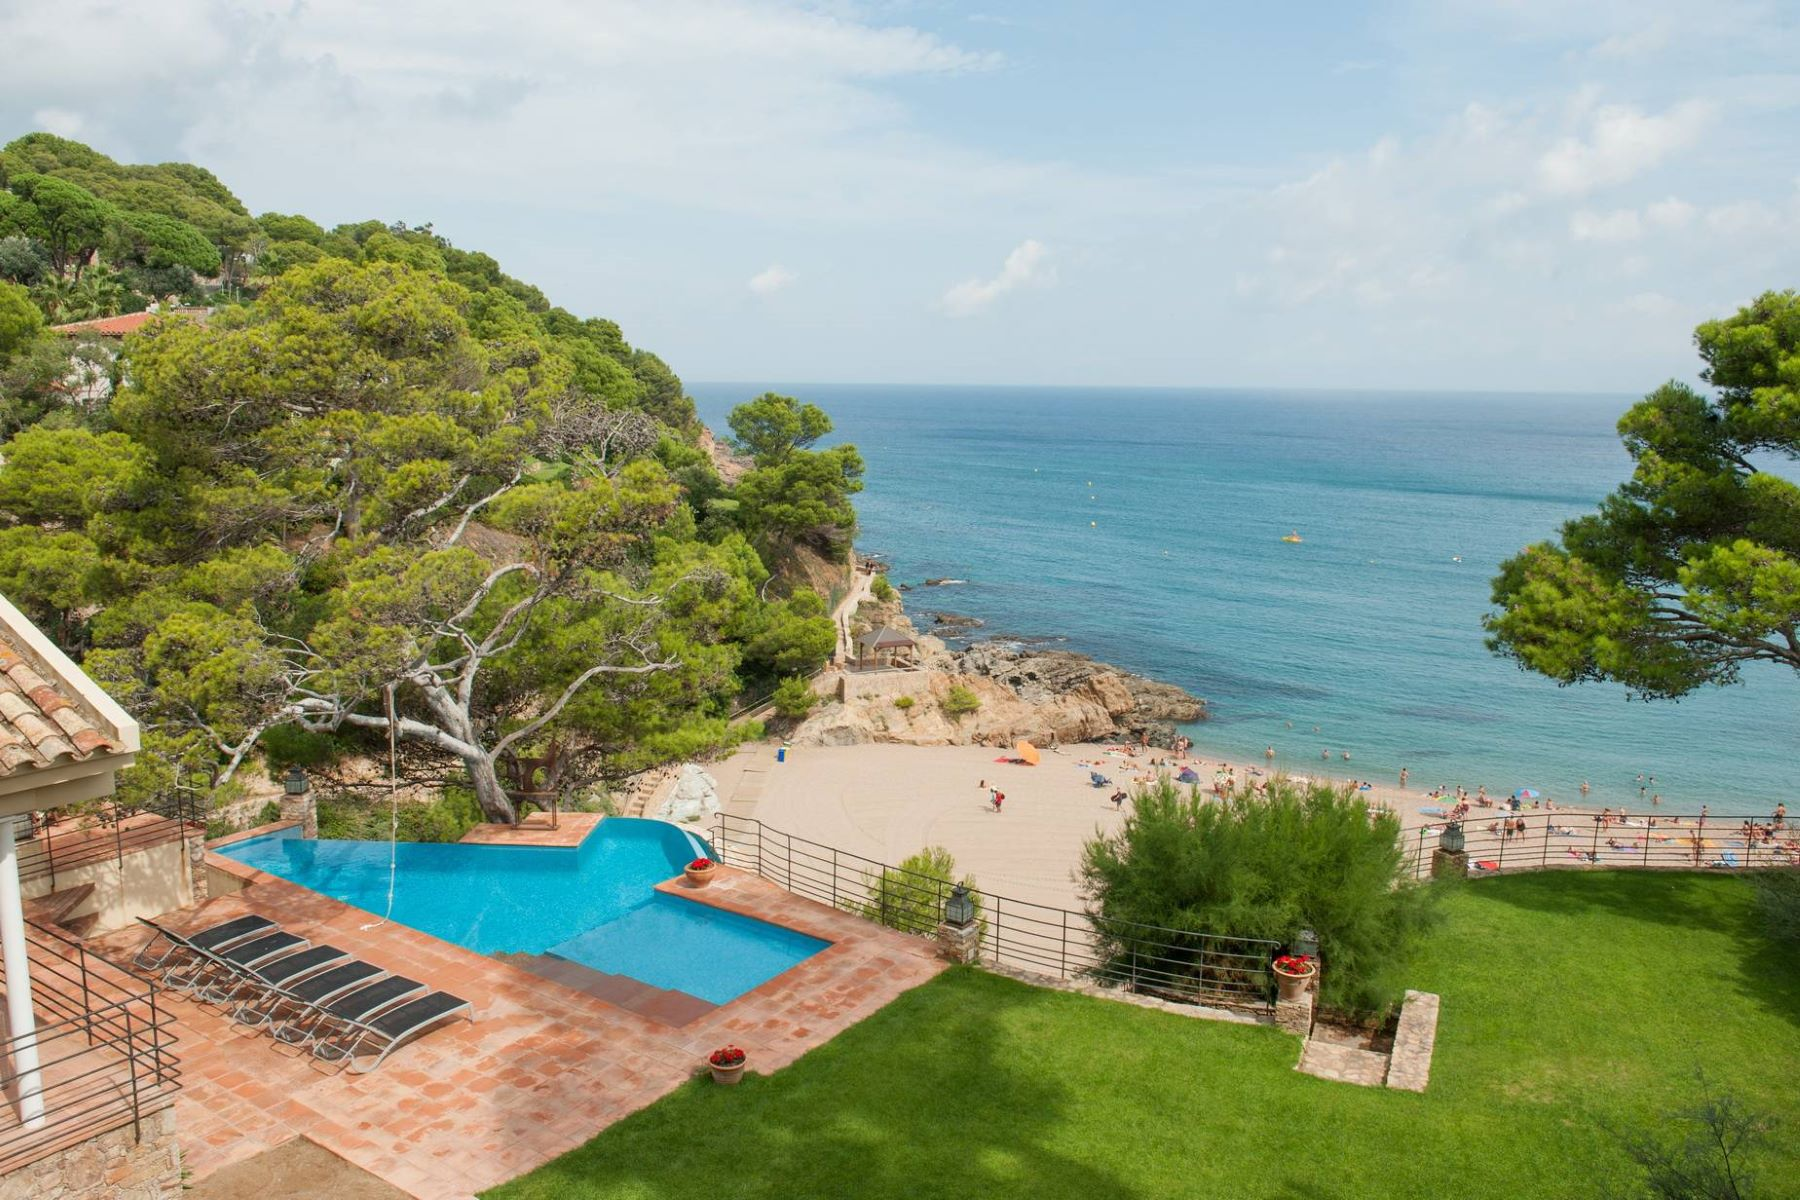 Tek Ailelik Ev için Satış at Large luxury property on the seafront Begur, Costa Brava, 17255 Ispanya